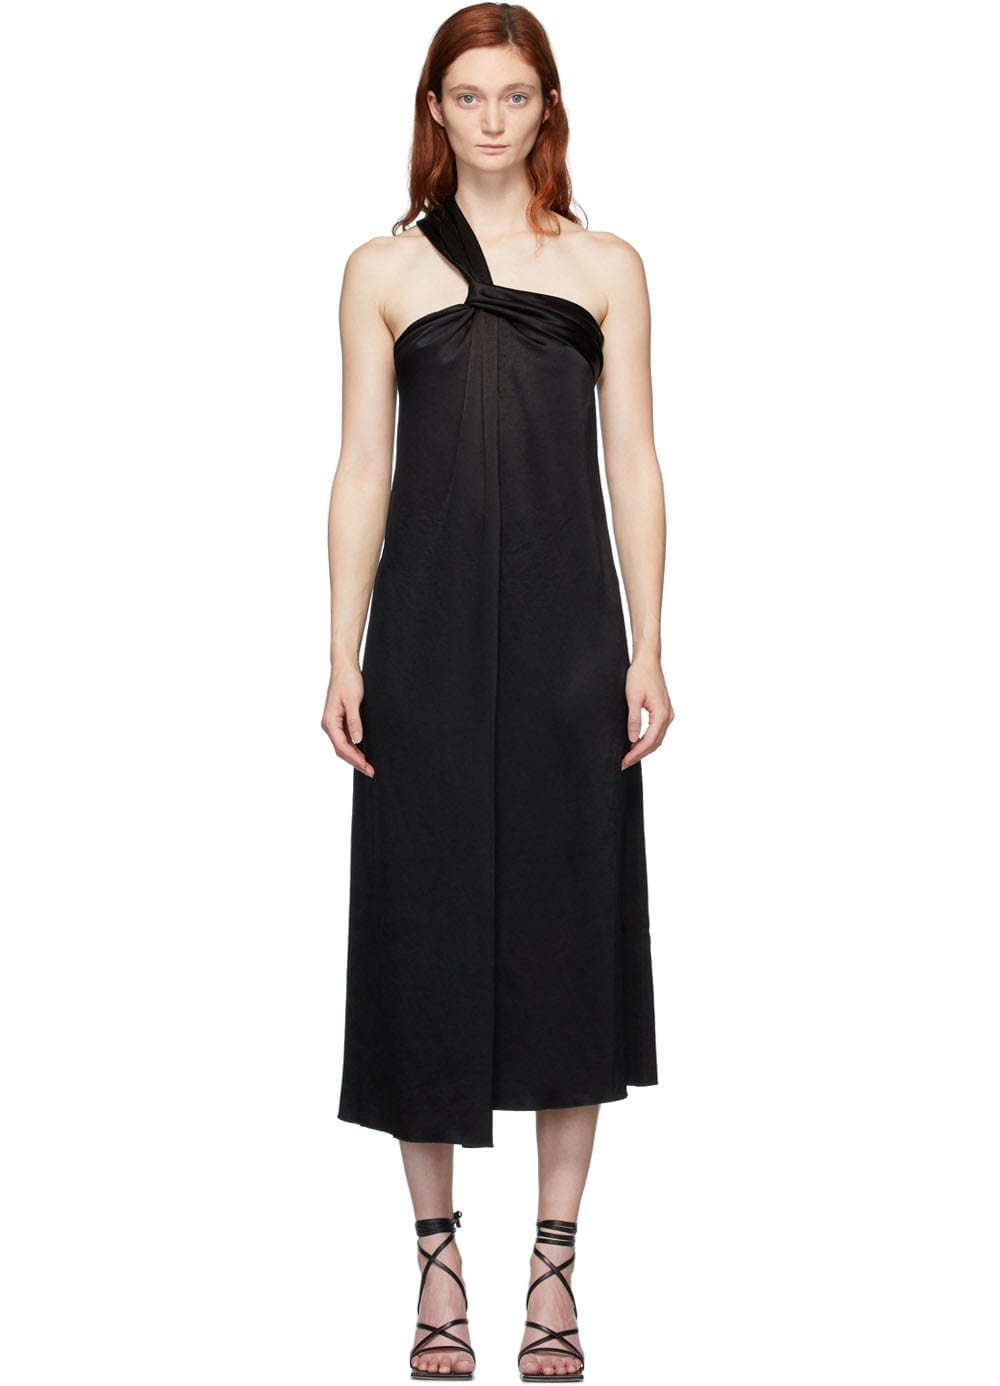 NANUSHKA Black Satin Single Strap Zena Dress